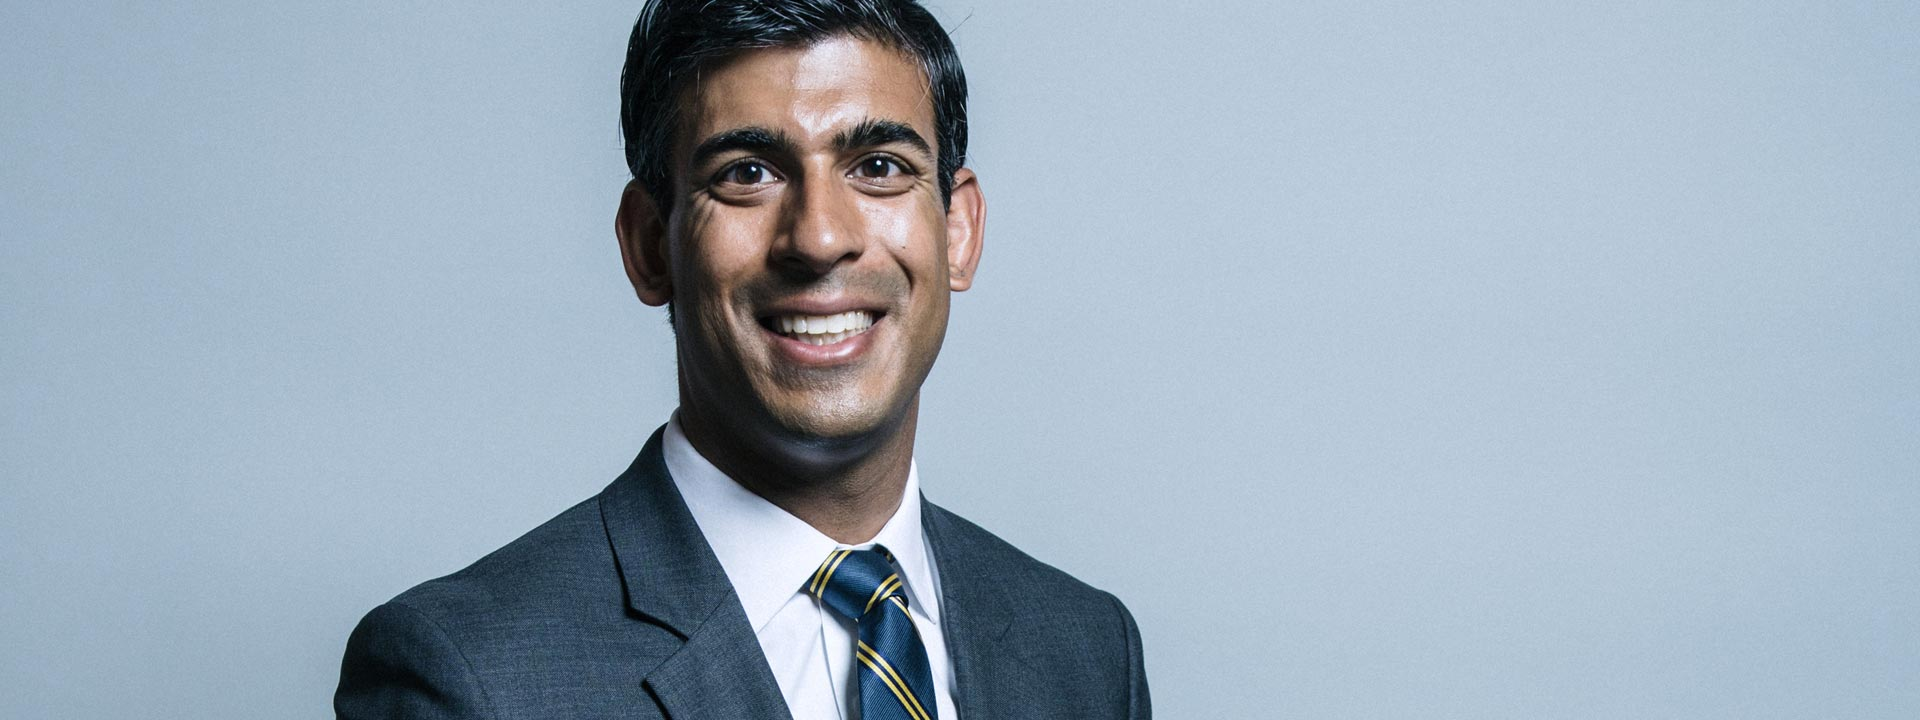 Willowlace News - Chancellor Rishi Sunak has Recommended the Extension of Mortgage Payment Holidays May 2020